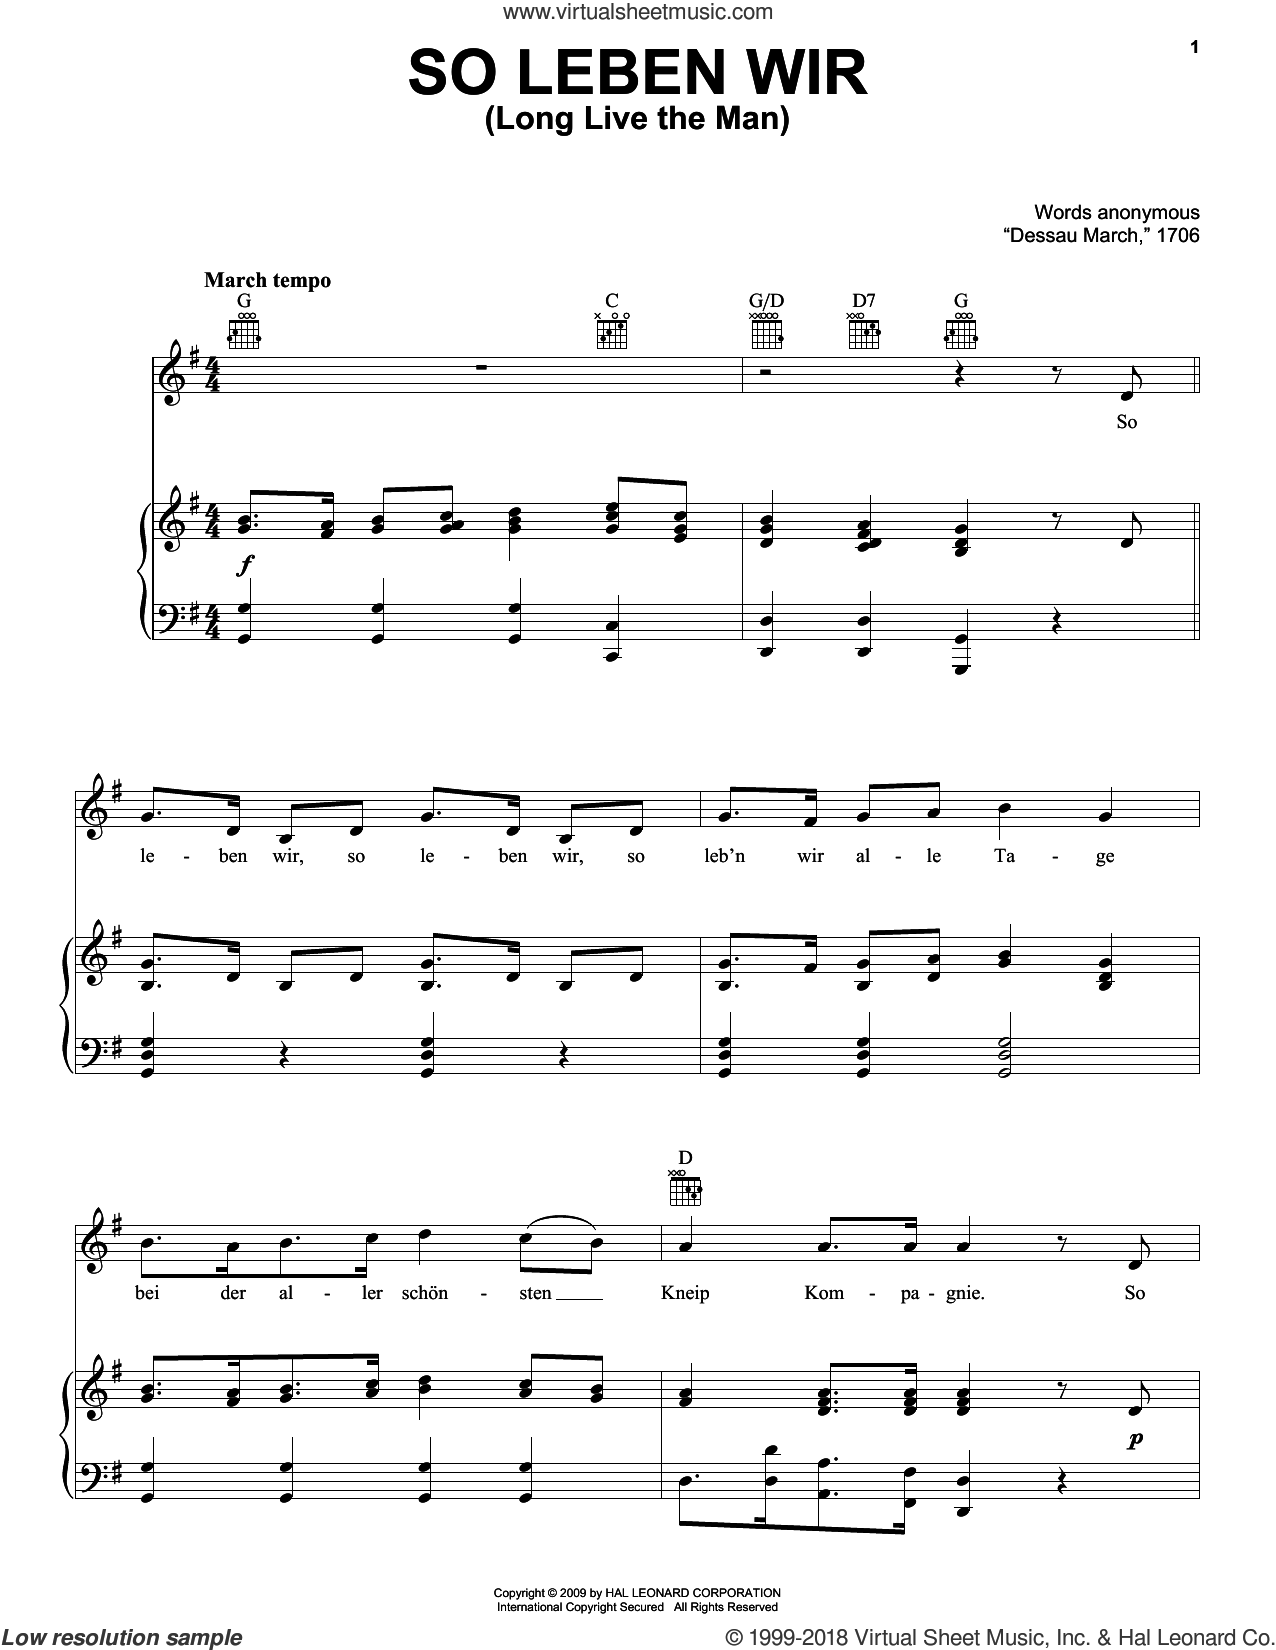 So Leben Wir (Long Live The Man) sheet music for voice, piano or guitar by Anonymous